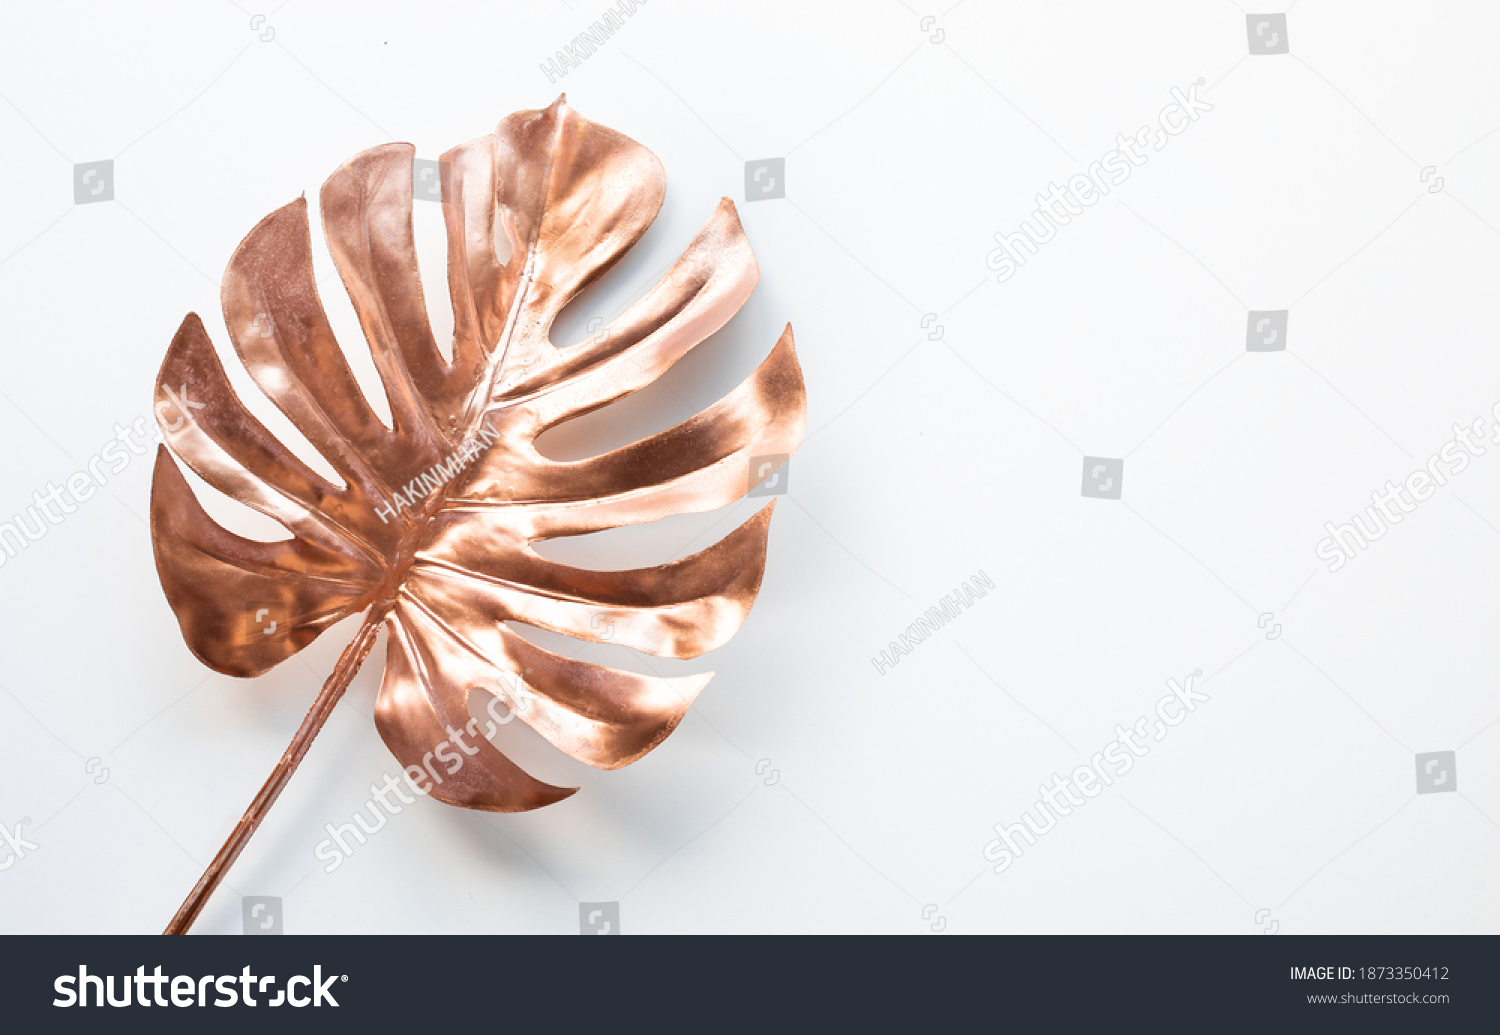 Tropical leaves in gold color on white space background.Abstract monstera leaf decoration design #1873350412